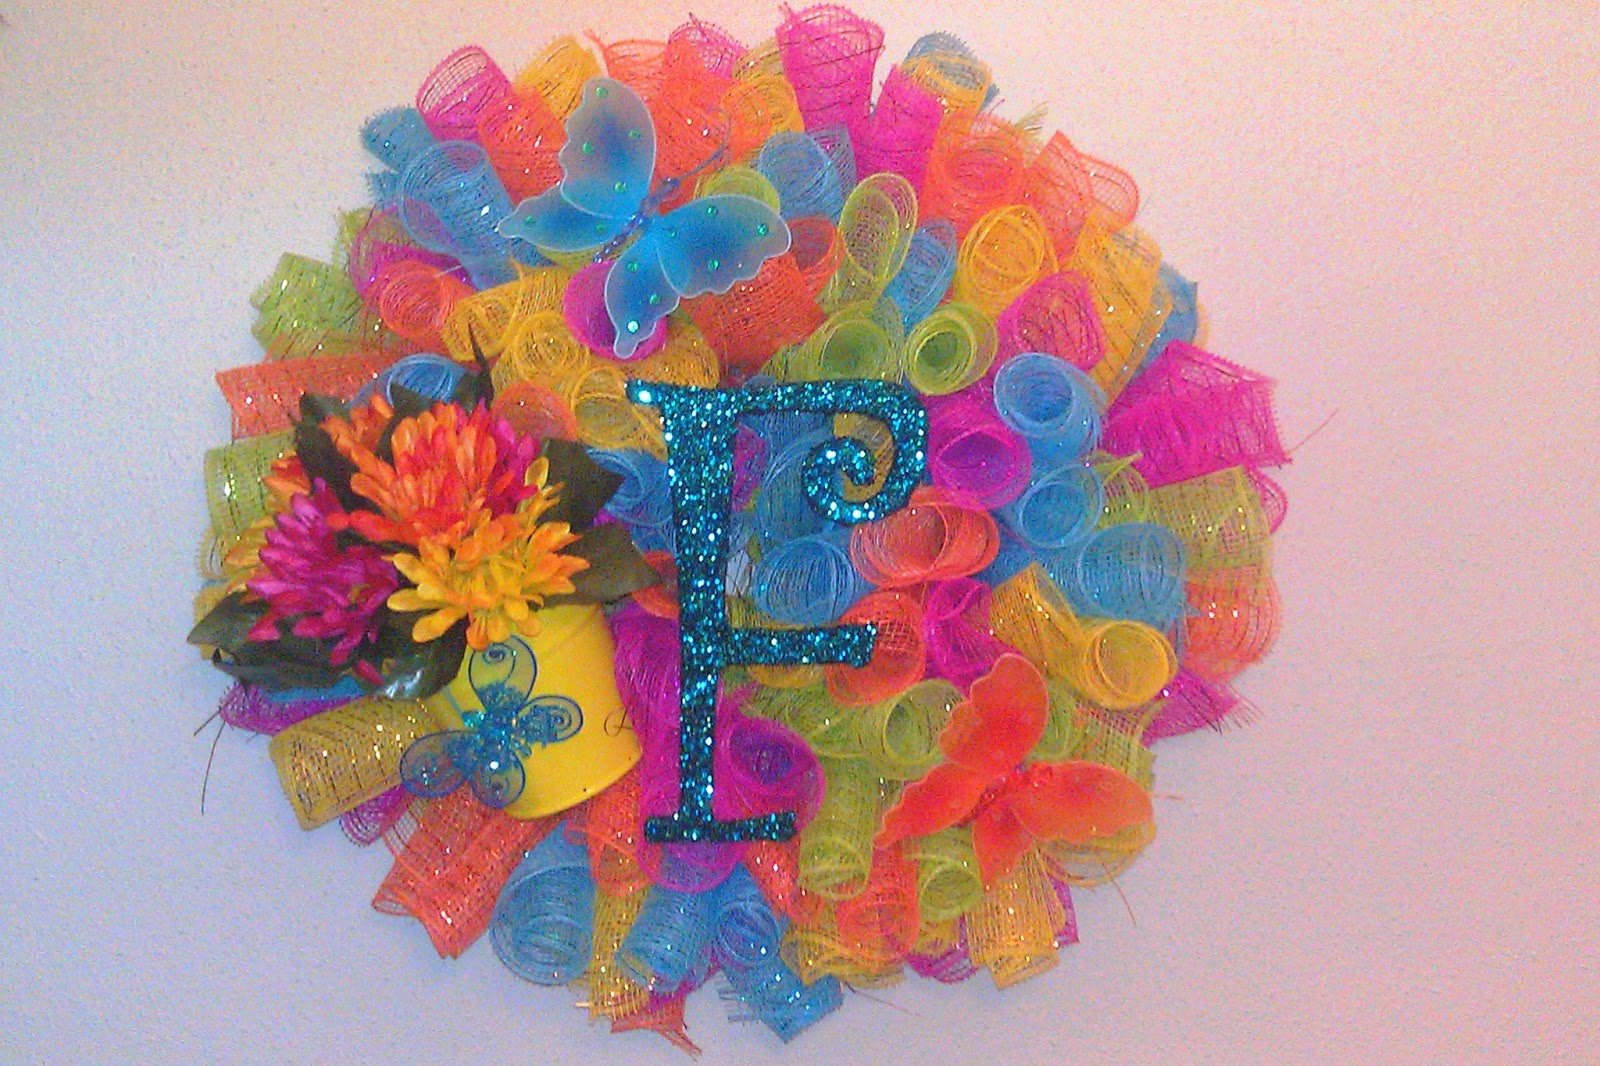 New orleans crafts by design springsummer wreaths multicolored spiral deco mesh butterfly and flower wreath baditri Images